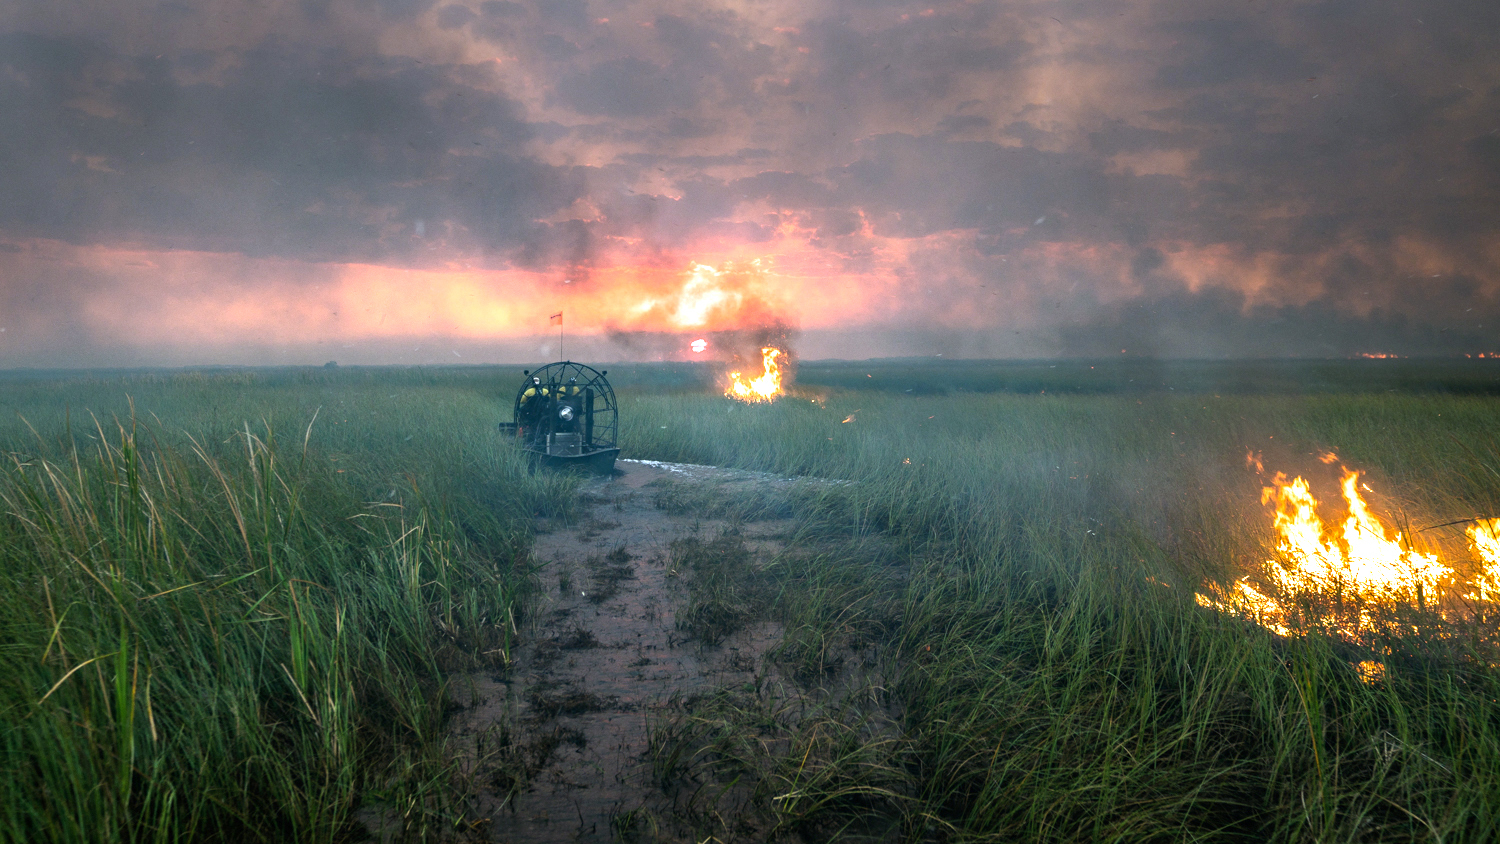 Airboat near fire in Everglades National Park